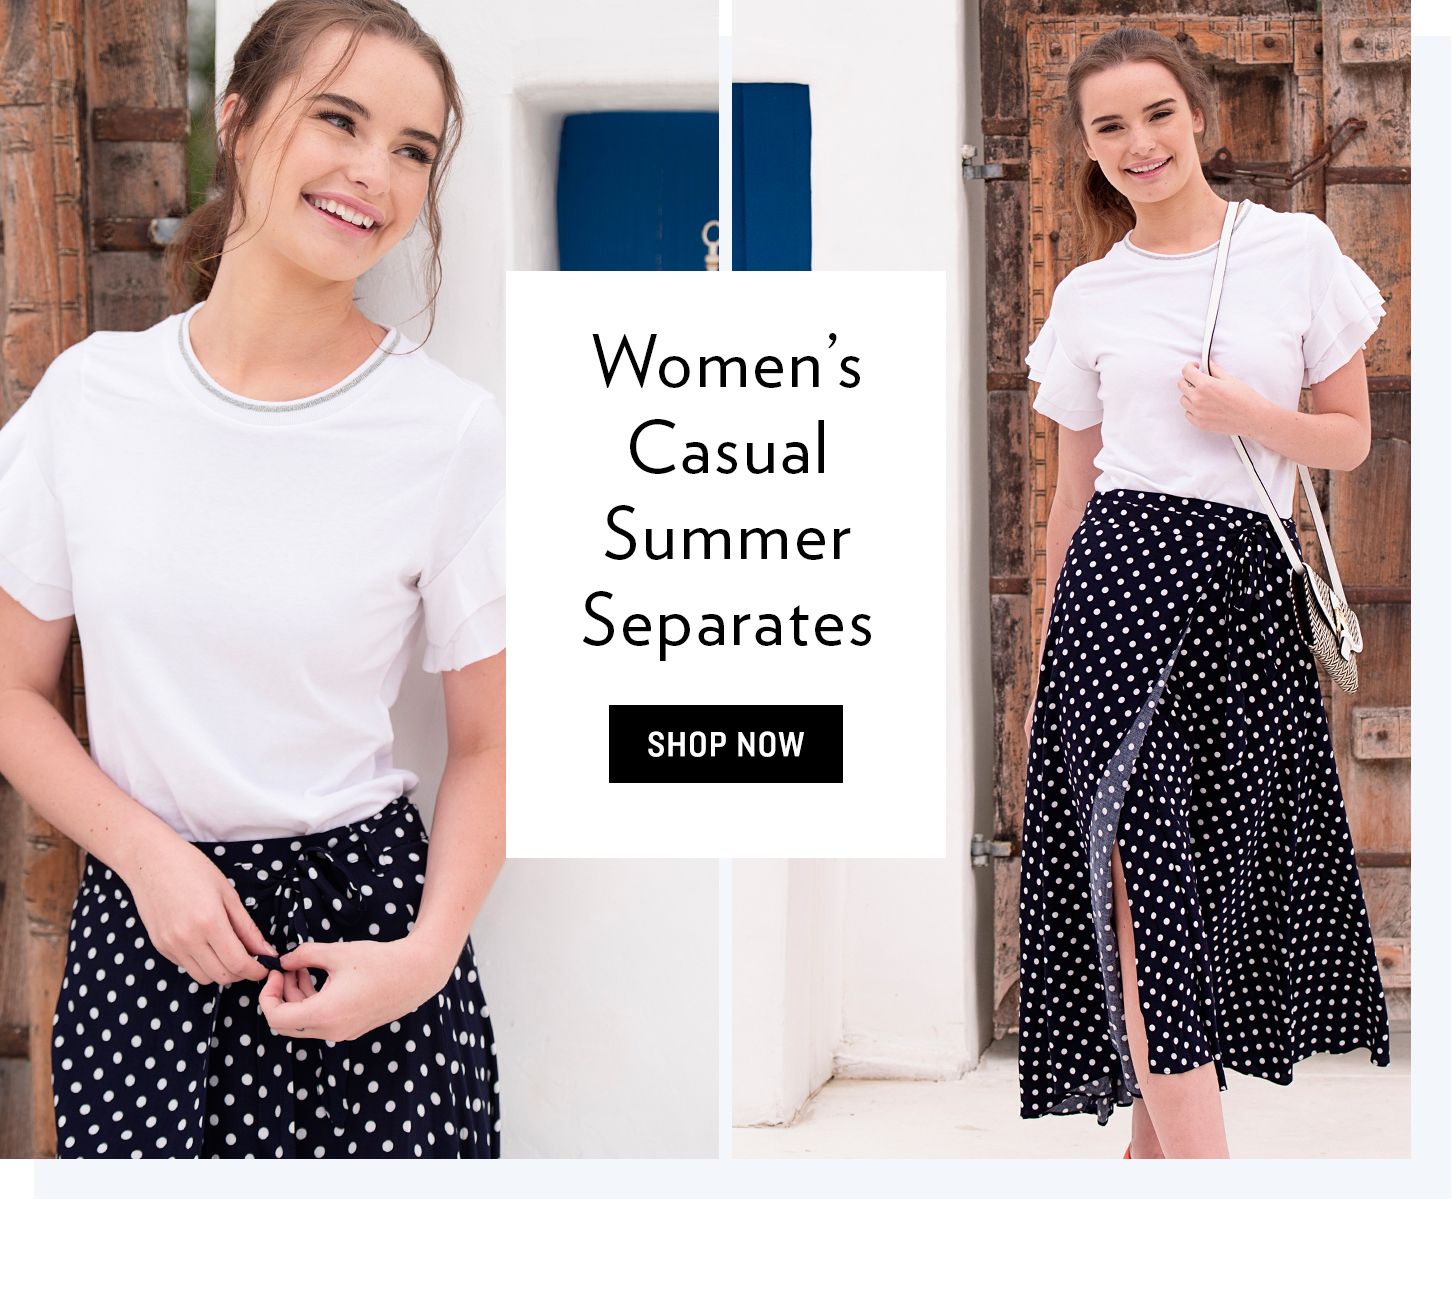 Shop Women's Casual Separates